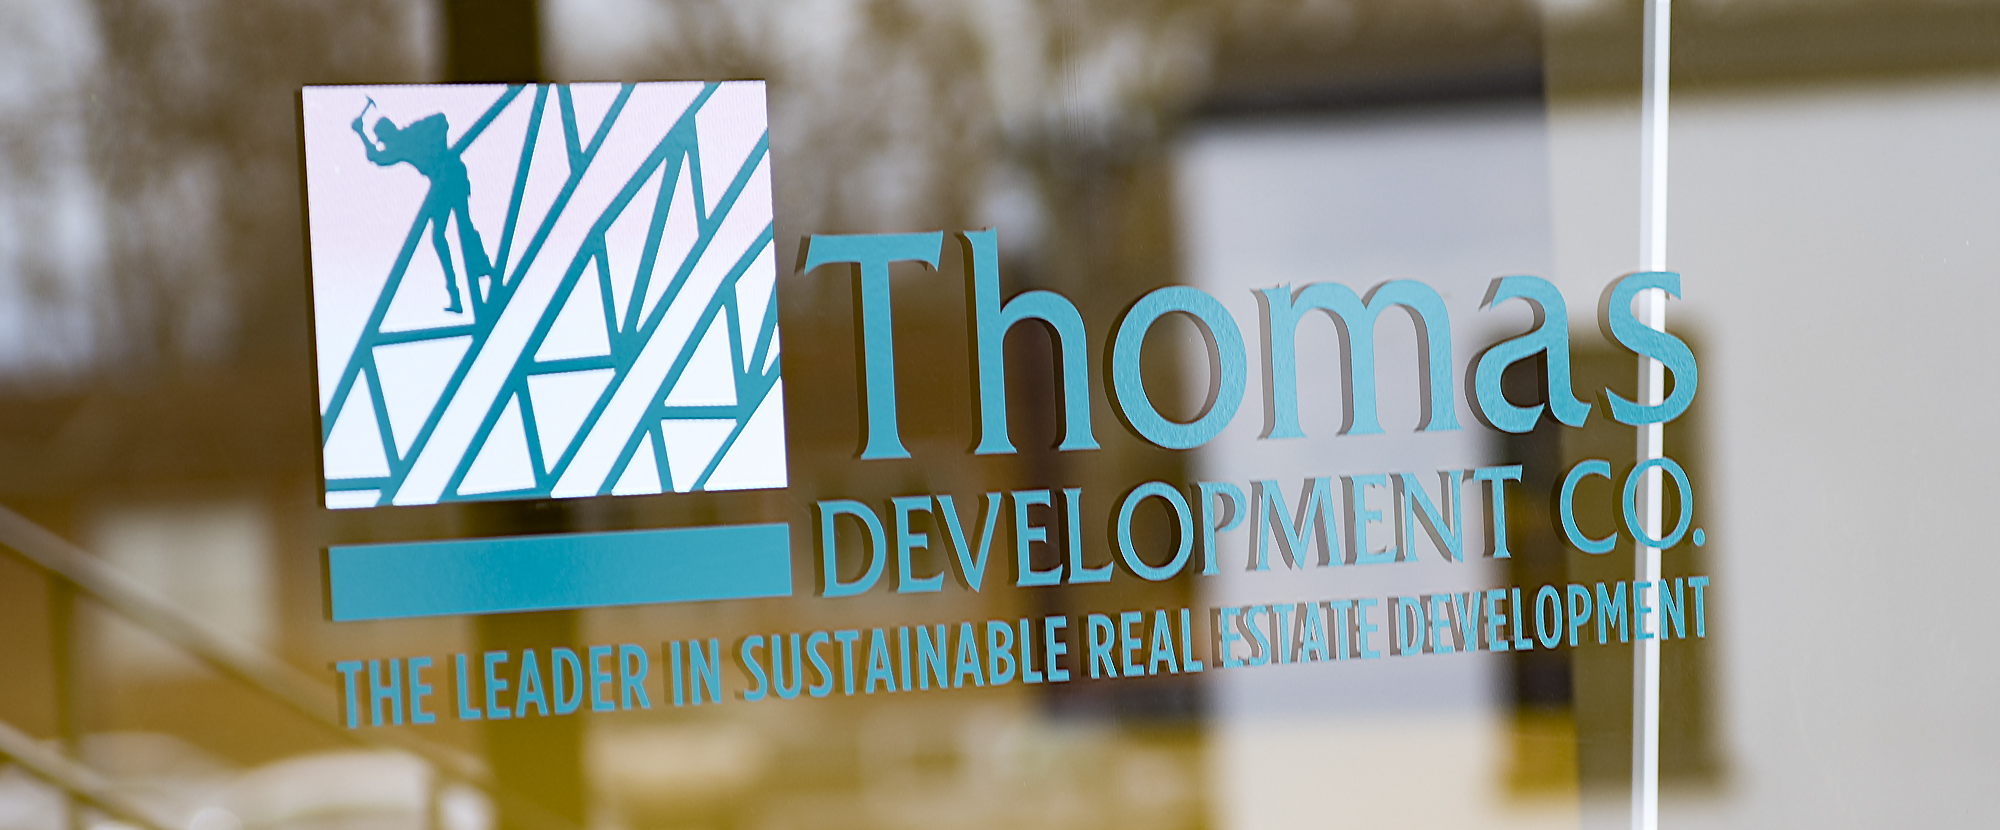 Thomas Development Co. is all about TRUST.